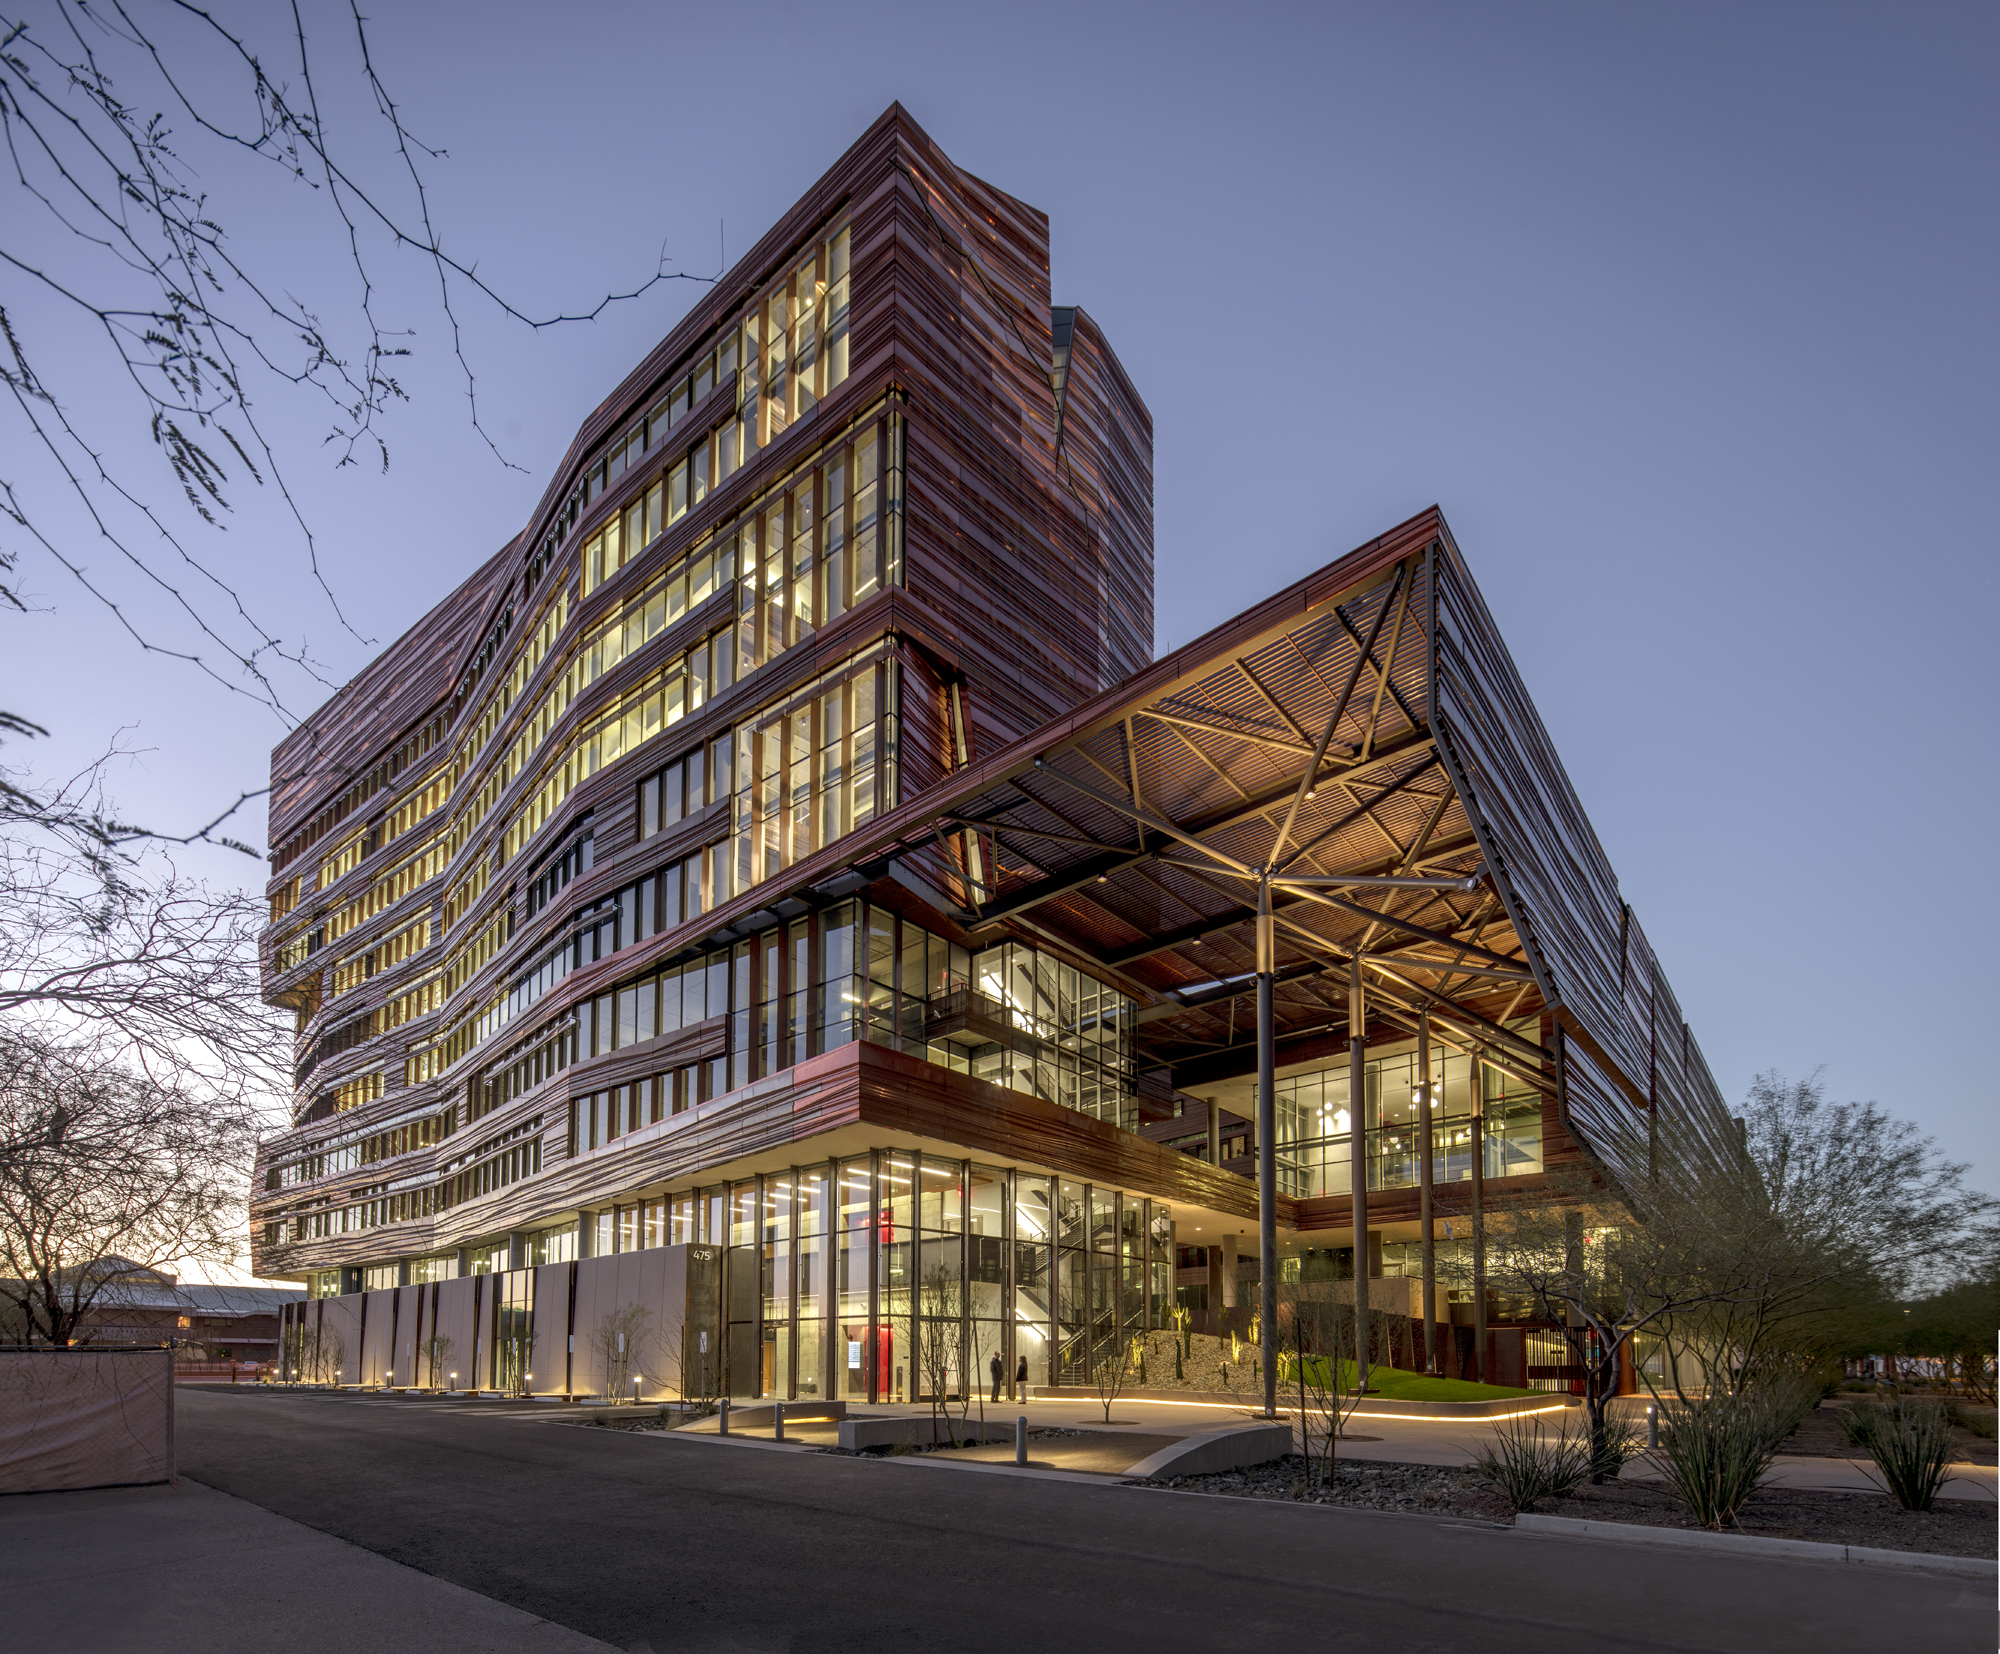 University of Arizona Biomedical Sciences Partnership Building, Arizona